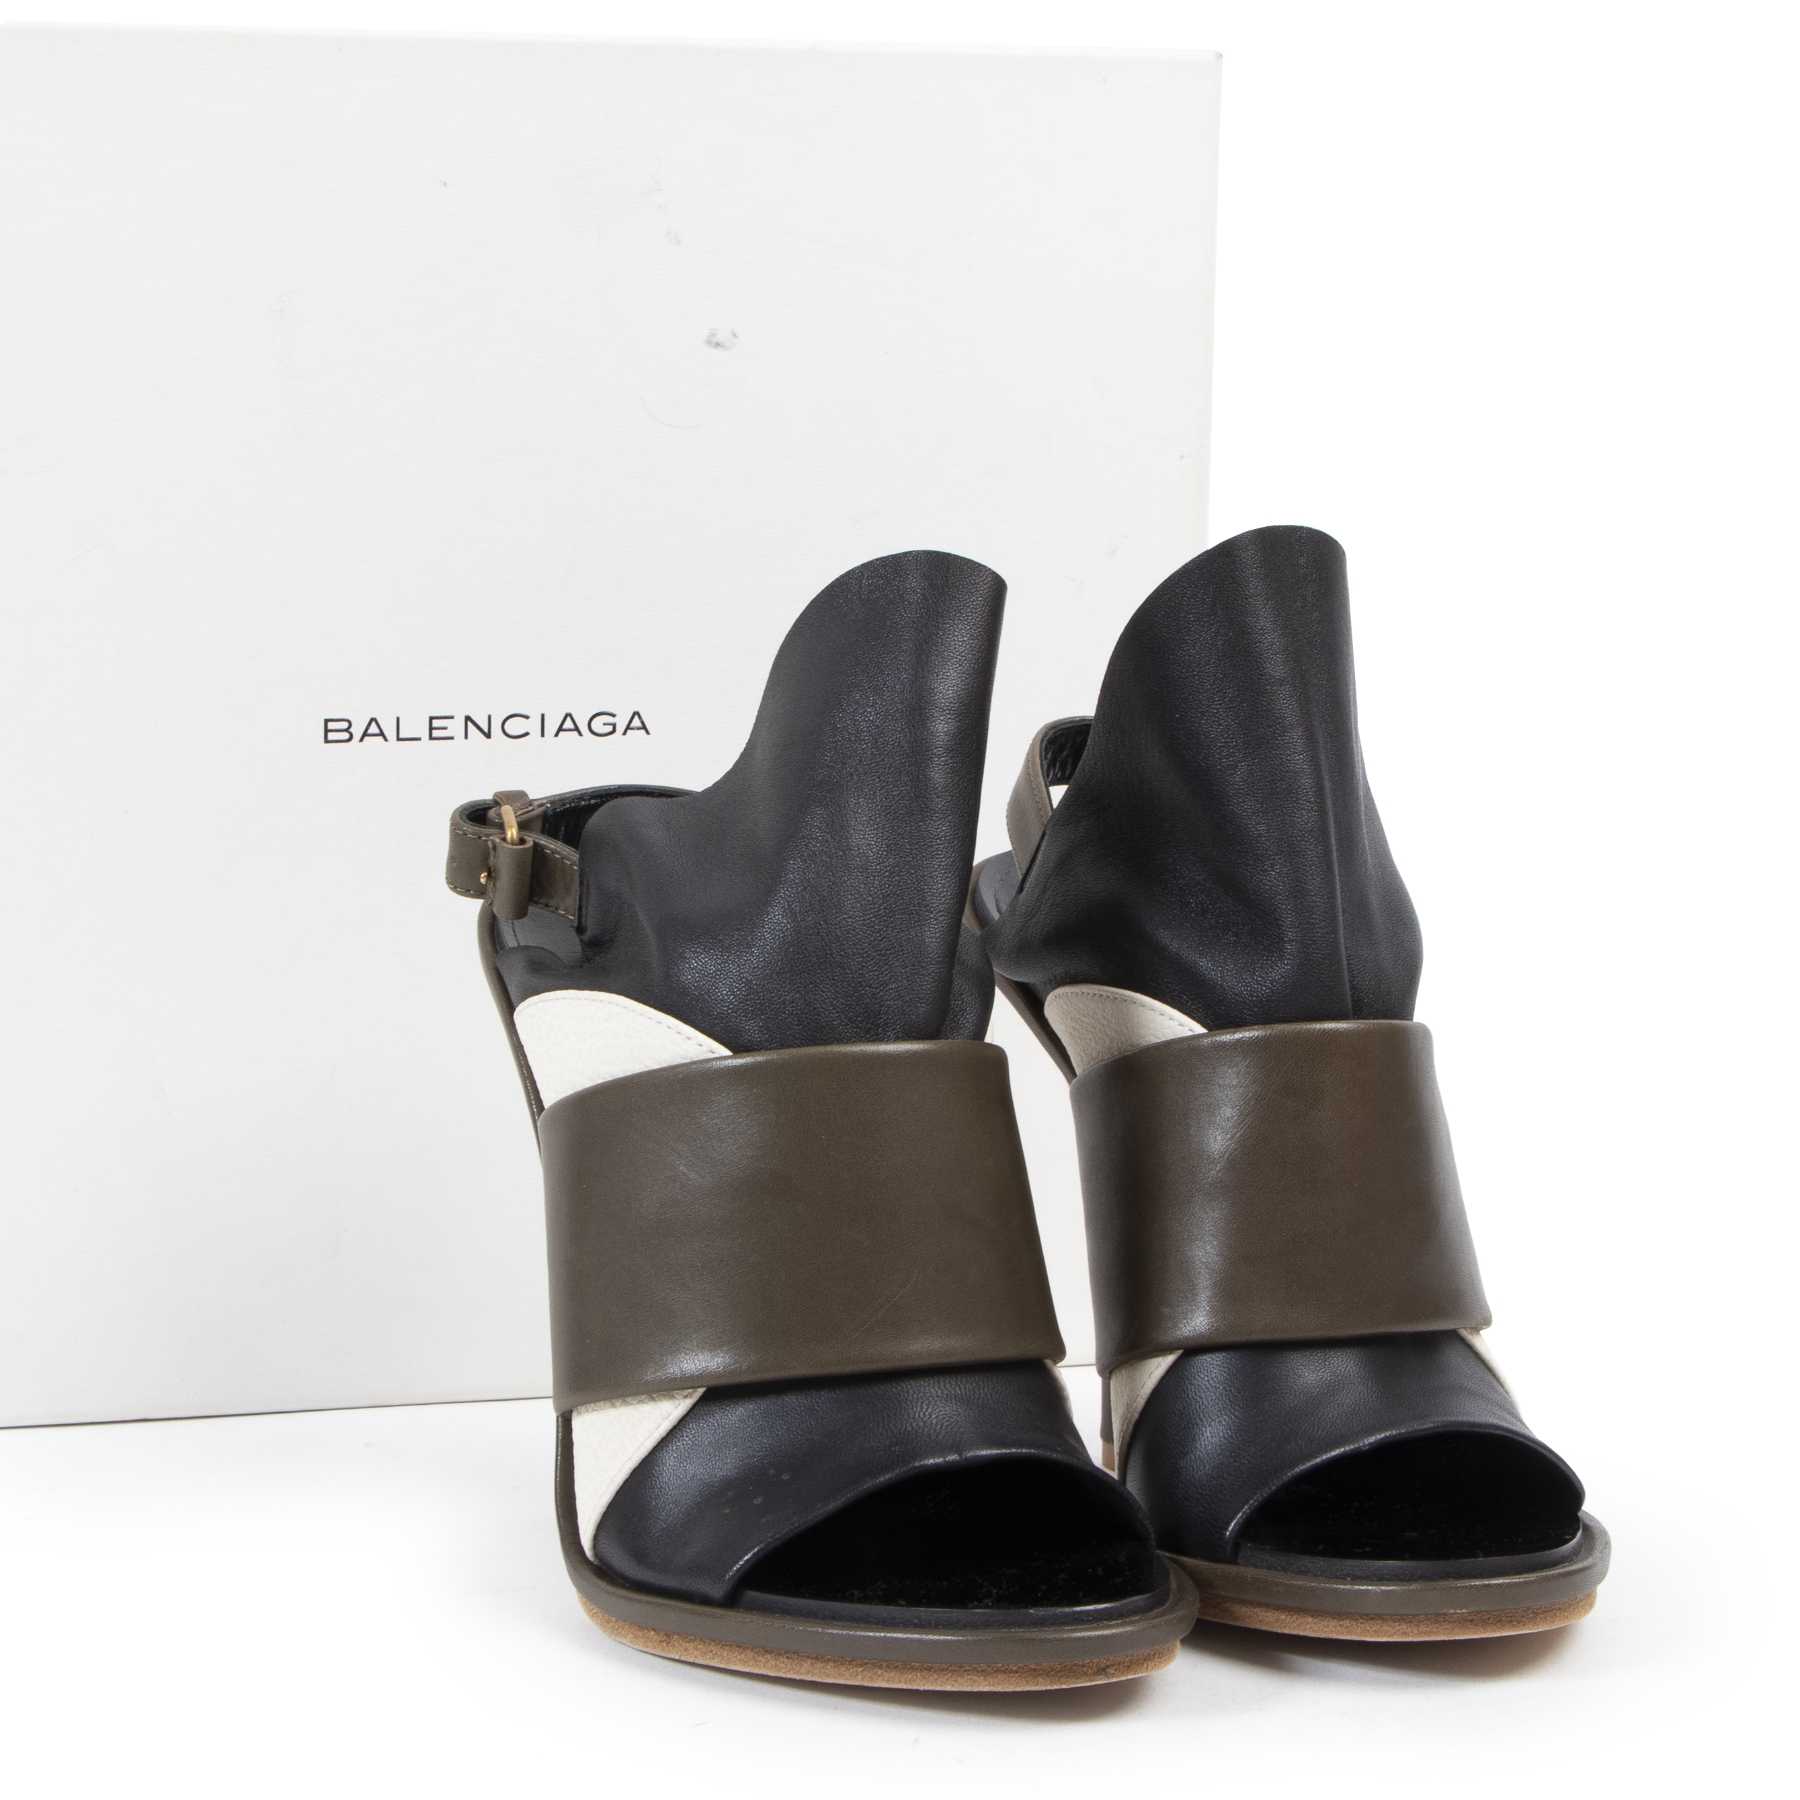 Buy preloved Balenciaga shoes heels at LabelLOV Antwerp.